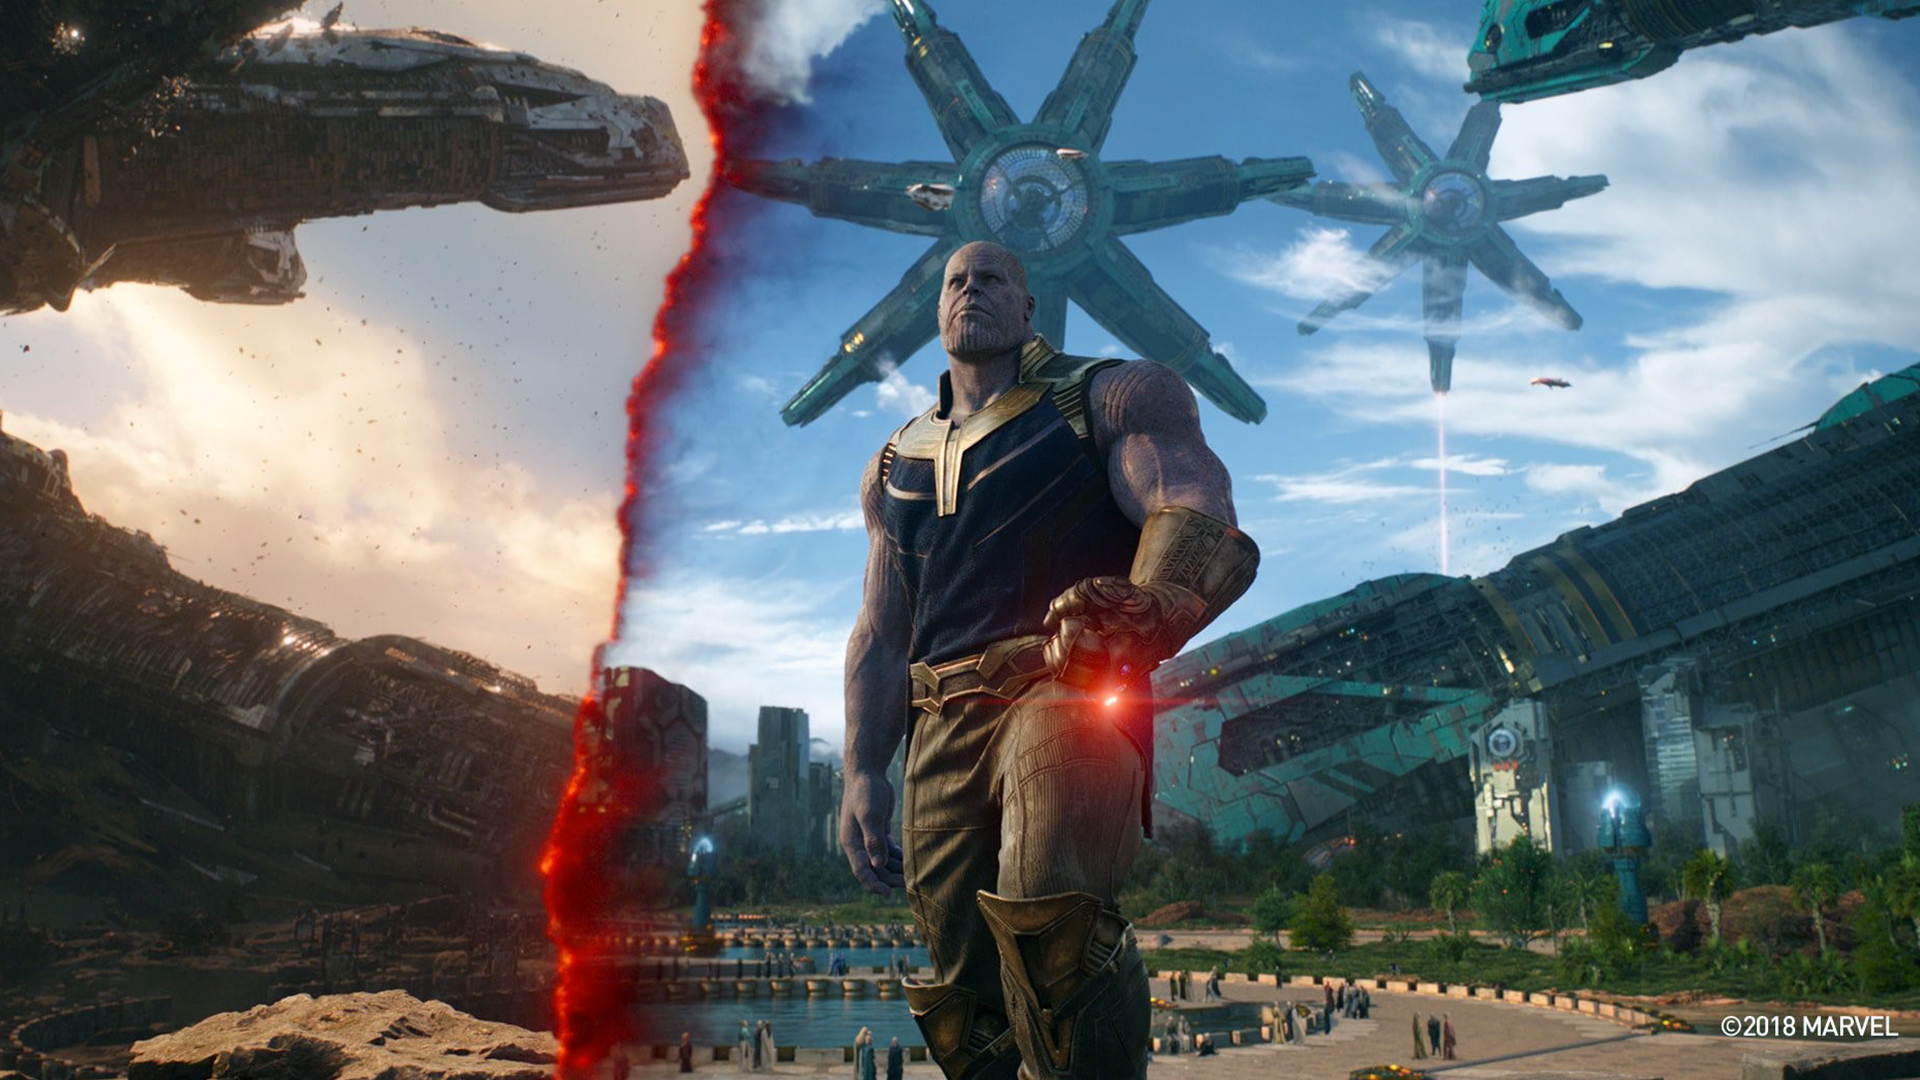 Thanos In Avengers Infinity War 2018 Movie, HD Movies, 4k